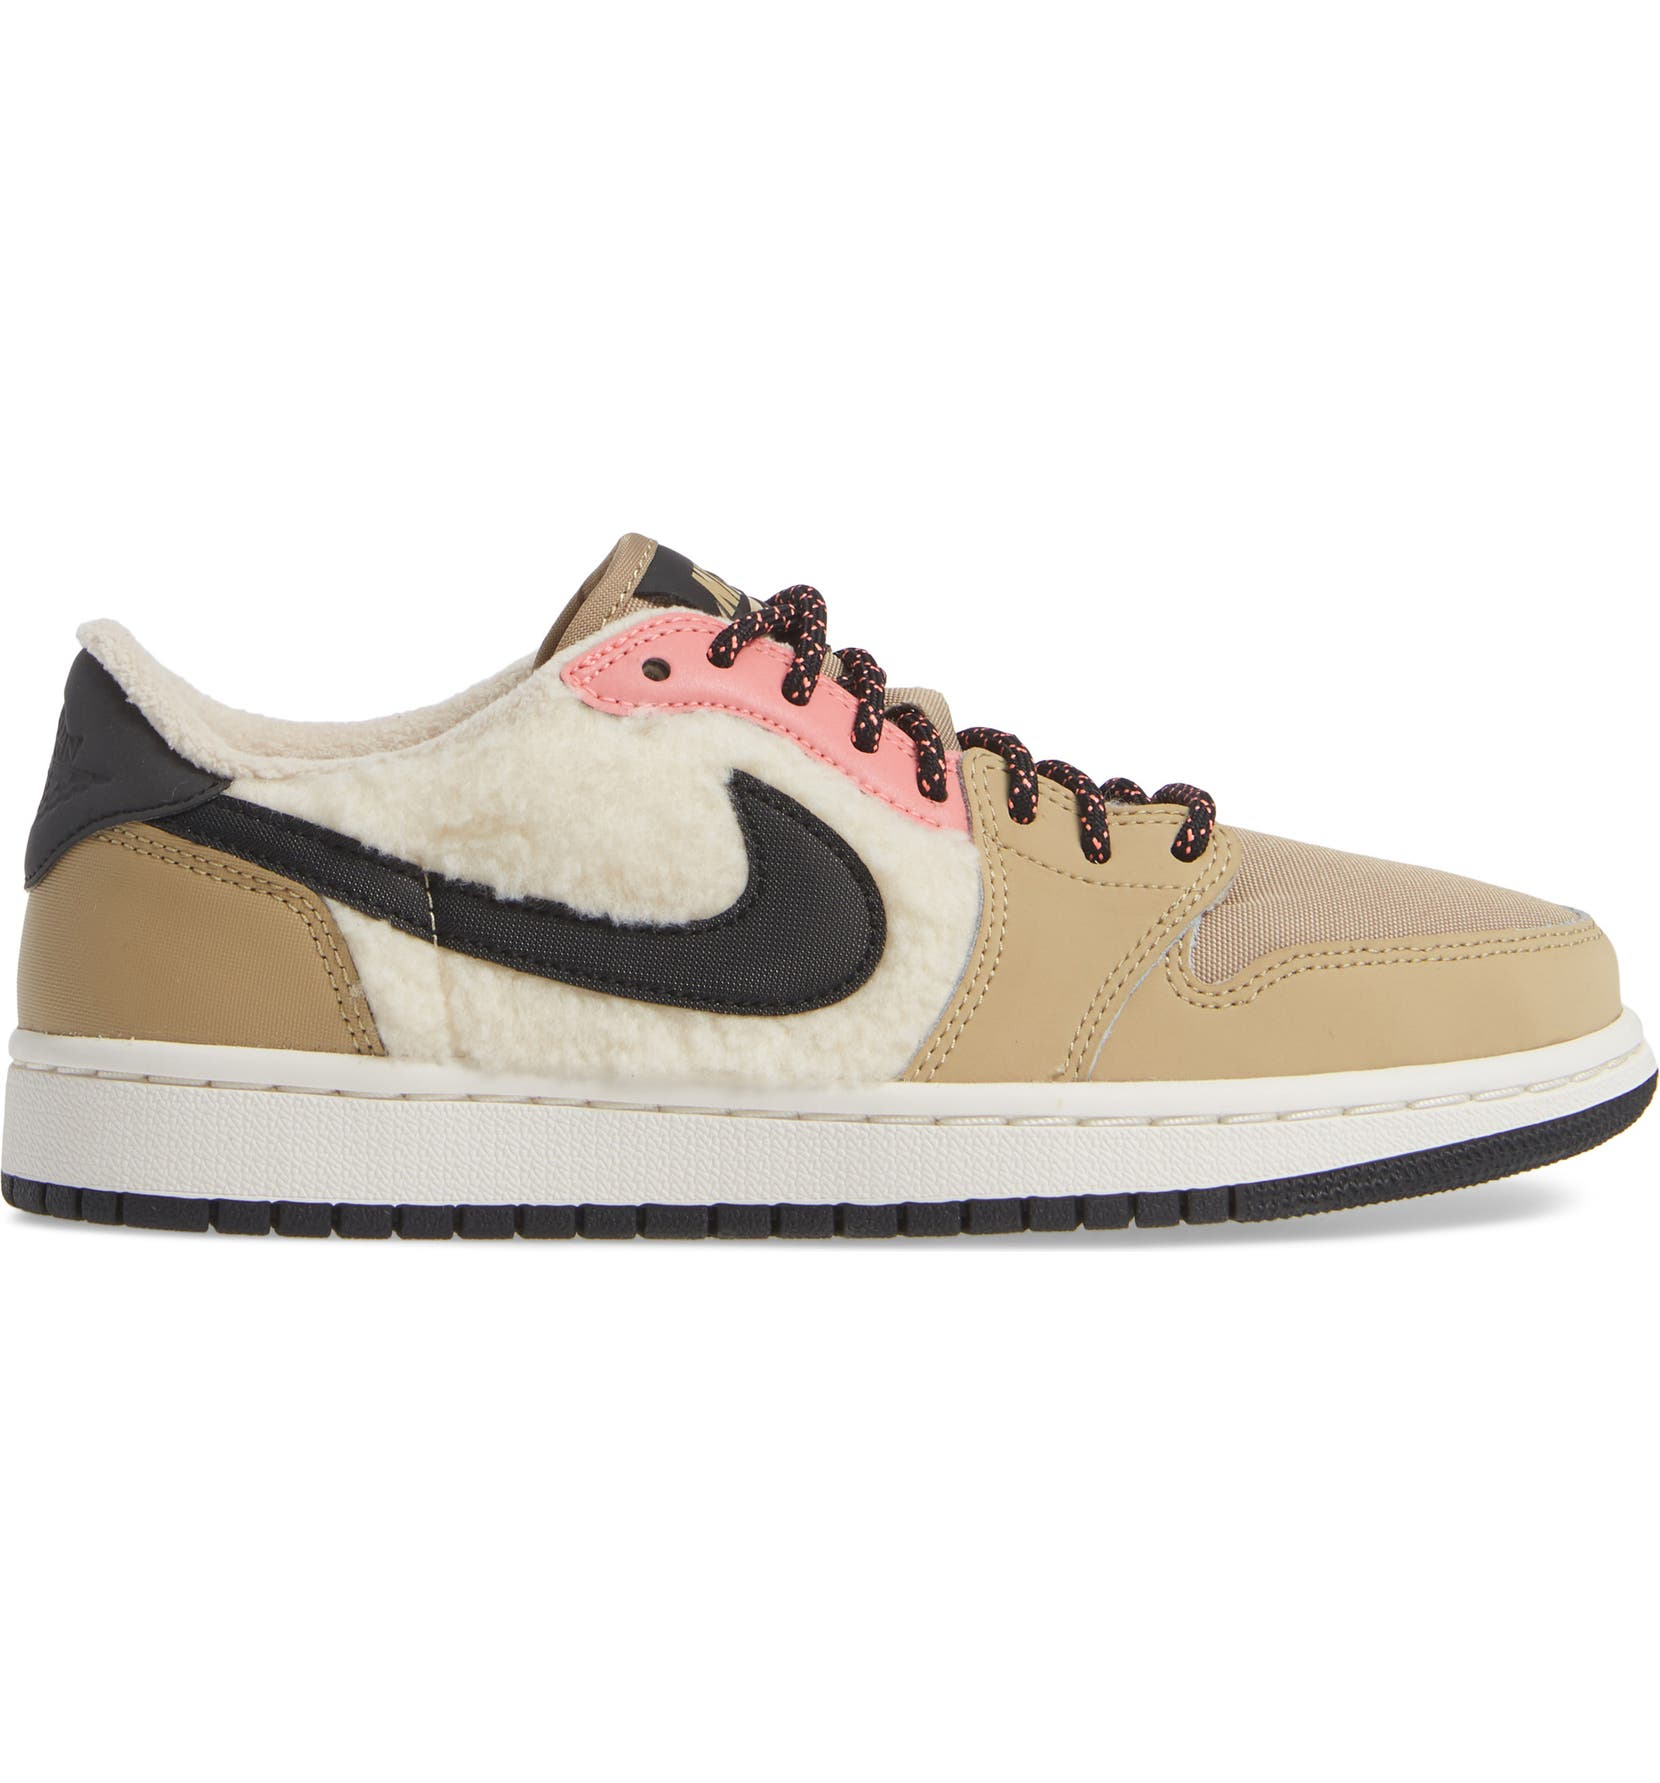 f88a0ac6c76 Nike Air Jordan 1 Retro Low OG Sneaker (Women)